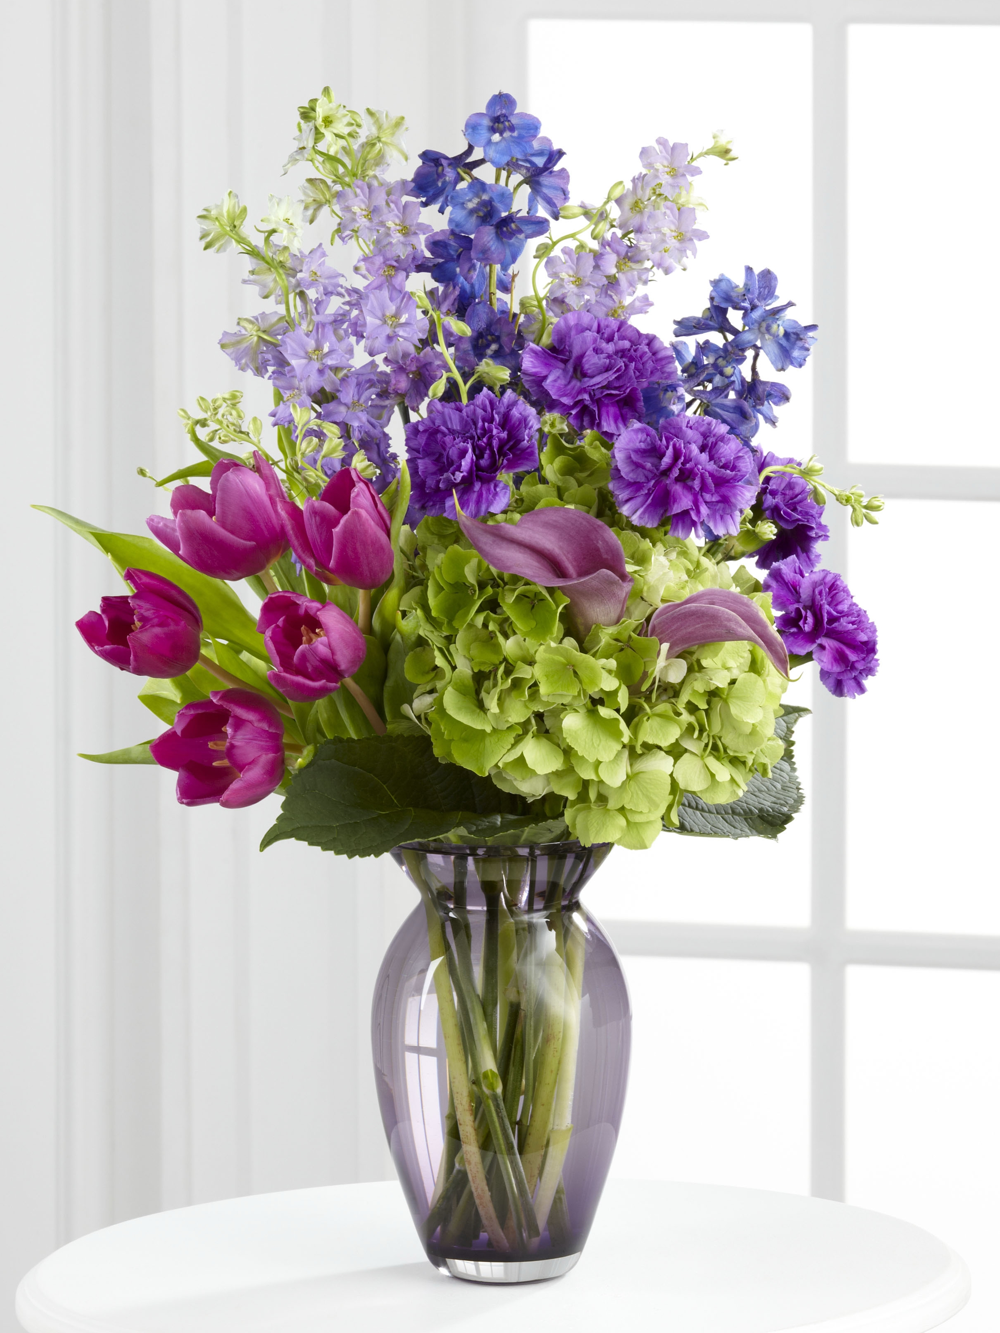 Spring Flowers In Vase Cardinal Funeral Homes Store